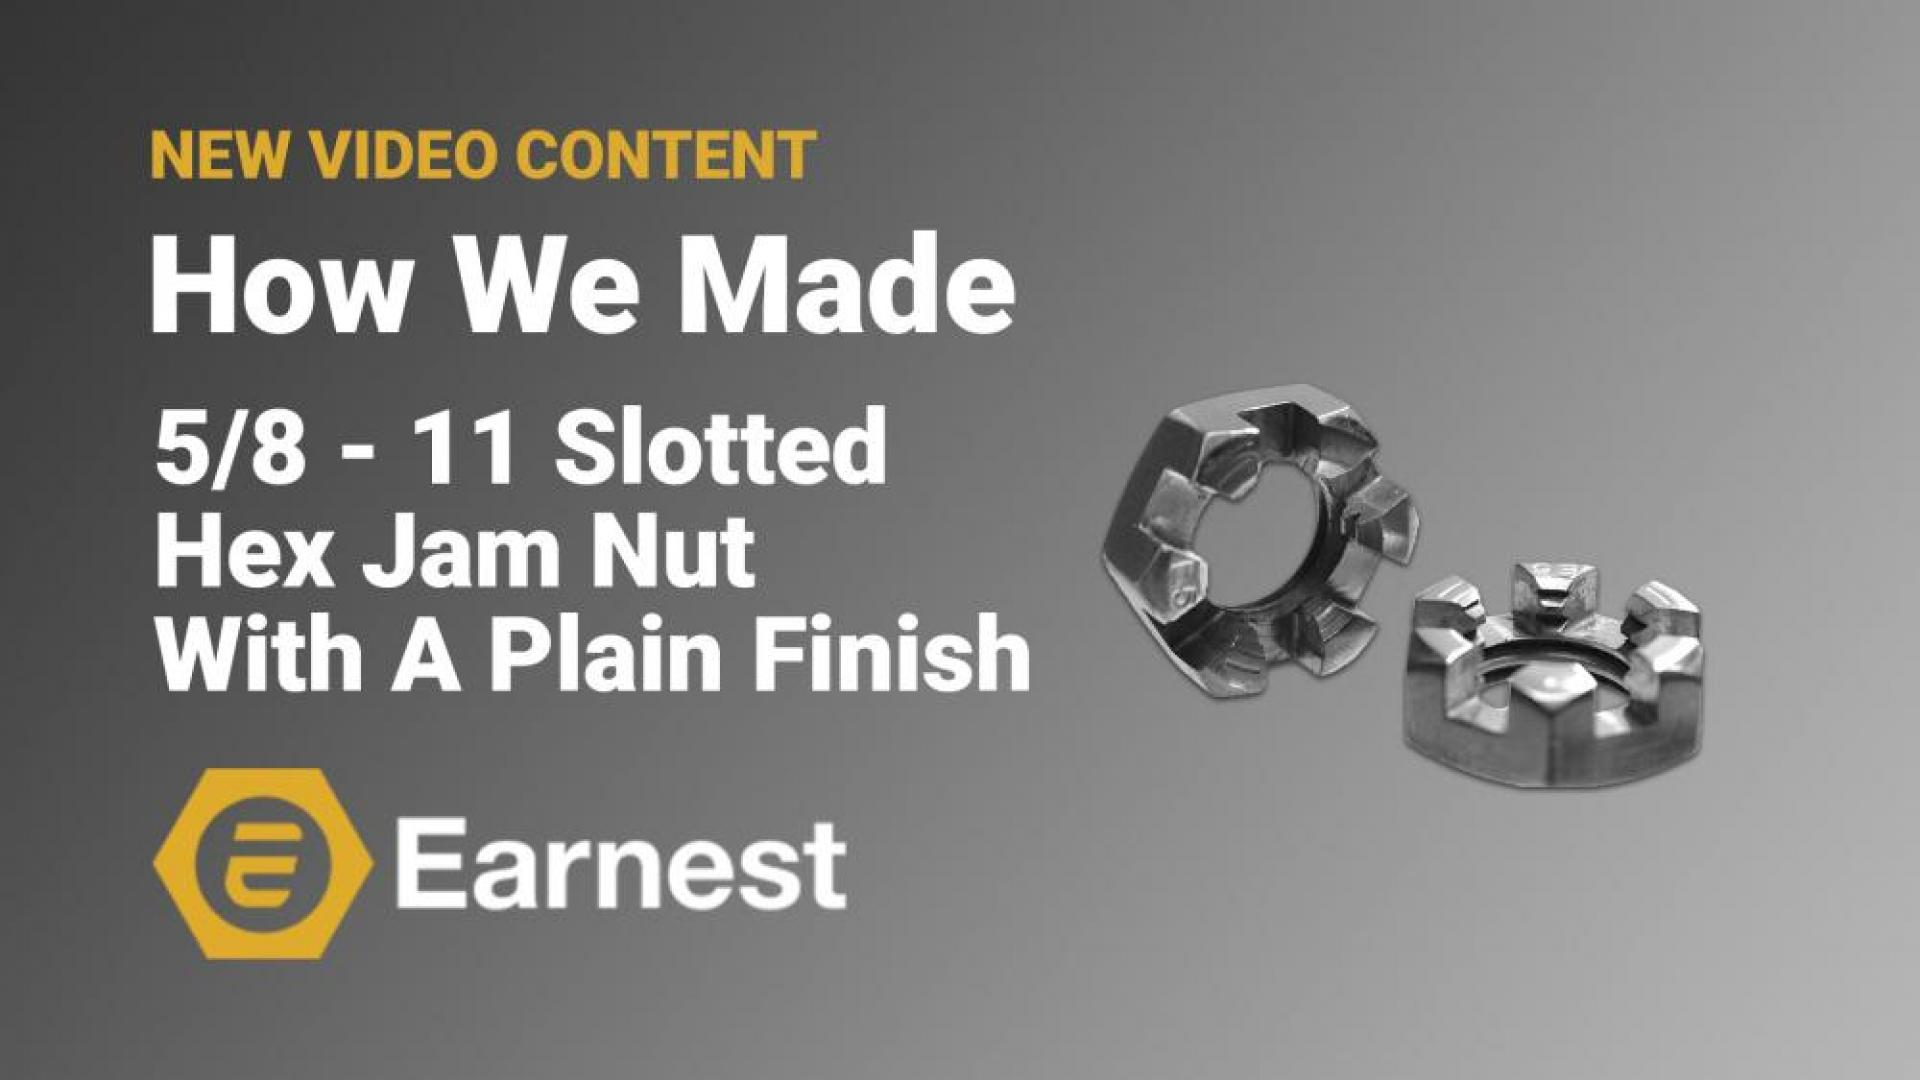 How We Made: 5/8 - 11 Slotted Hex Jam Nut With A Plain Finish